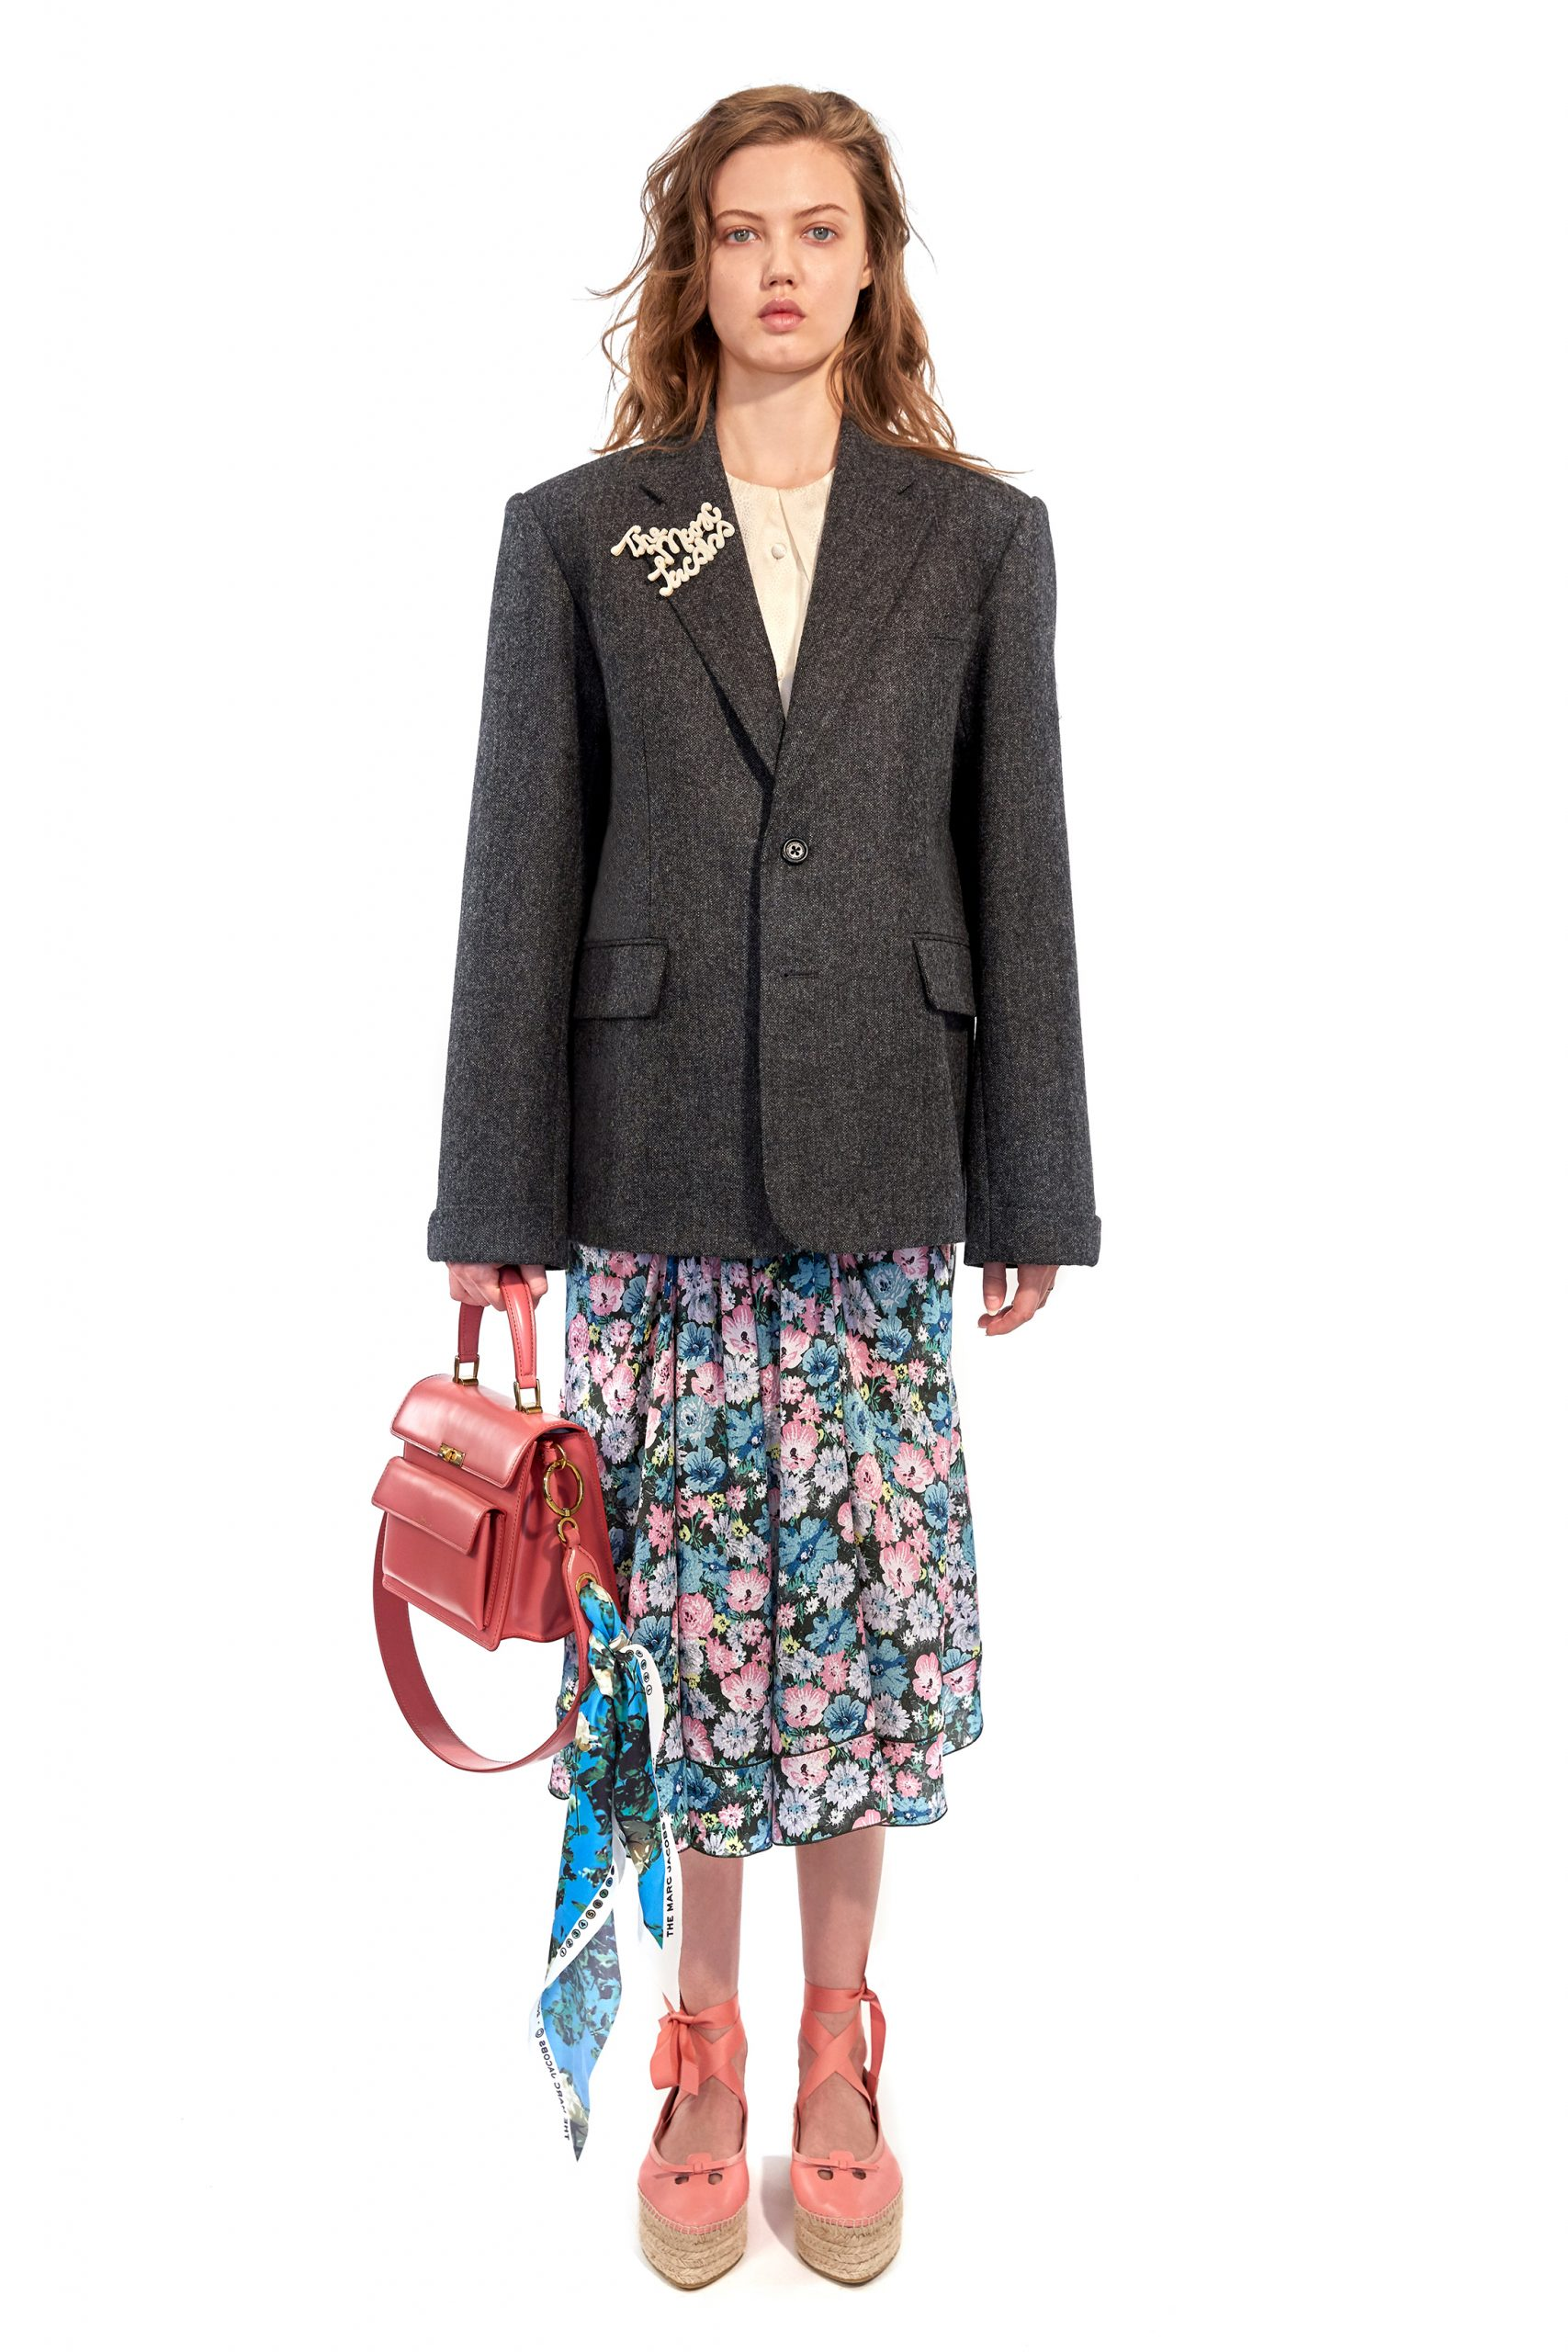 The Marc Jacobs Pre-Fall 2020 Fashion Collection Pictures